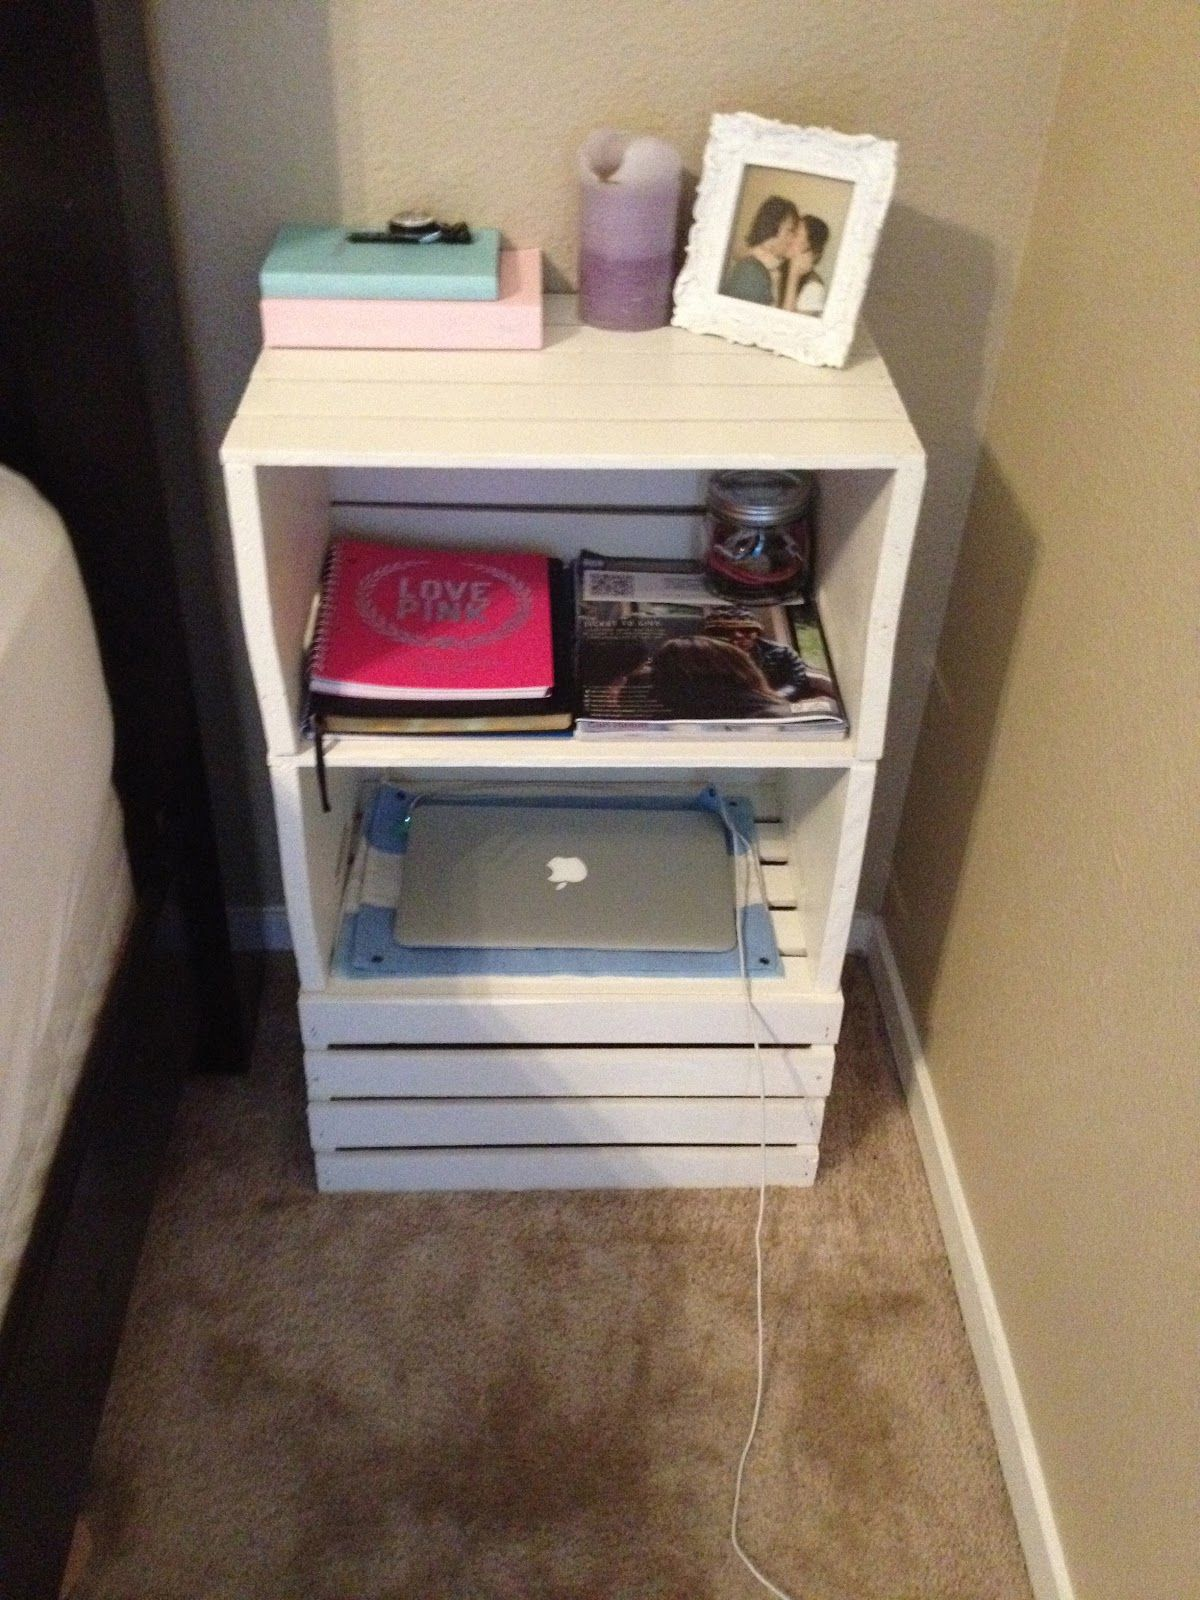 7 Diy Wooden Crate Projects Kerry Angelos Interior Ideas College Apartment Decor College Apartment Diy Diy College Apartment Decor